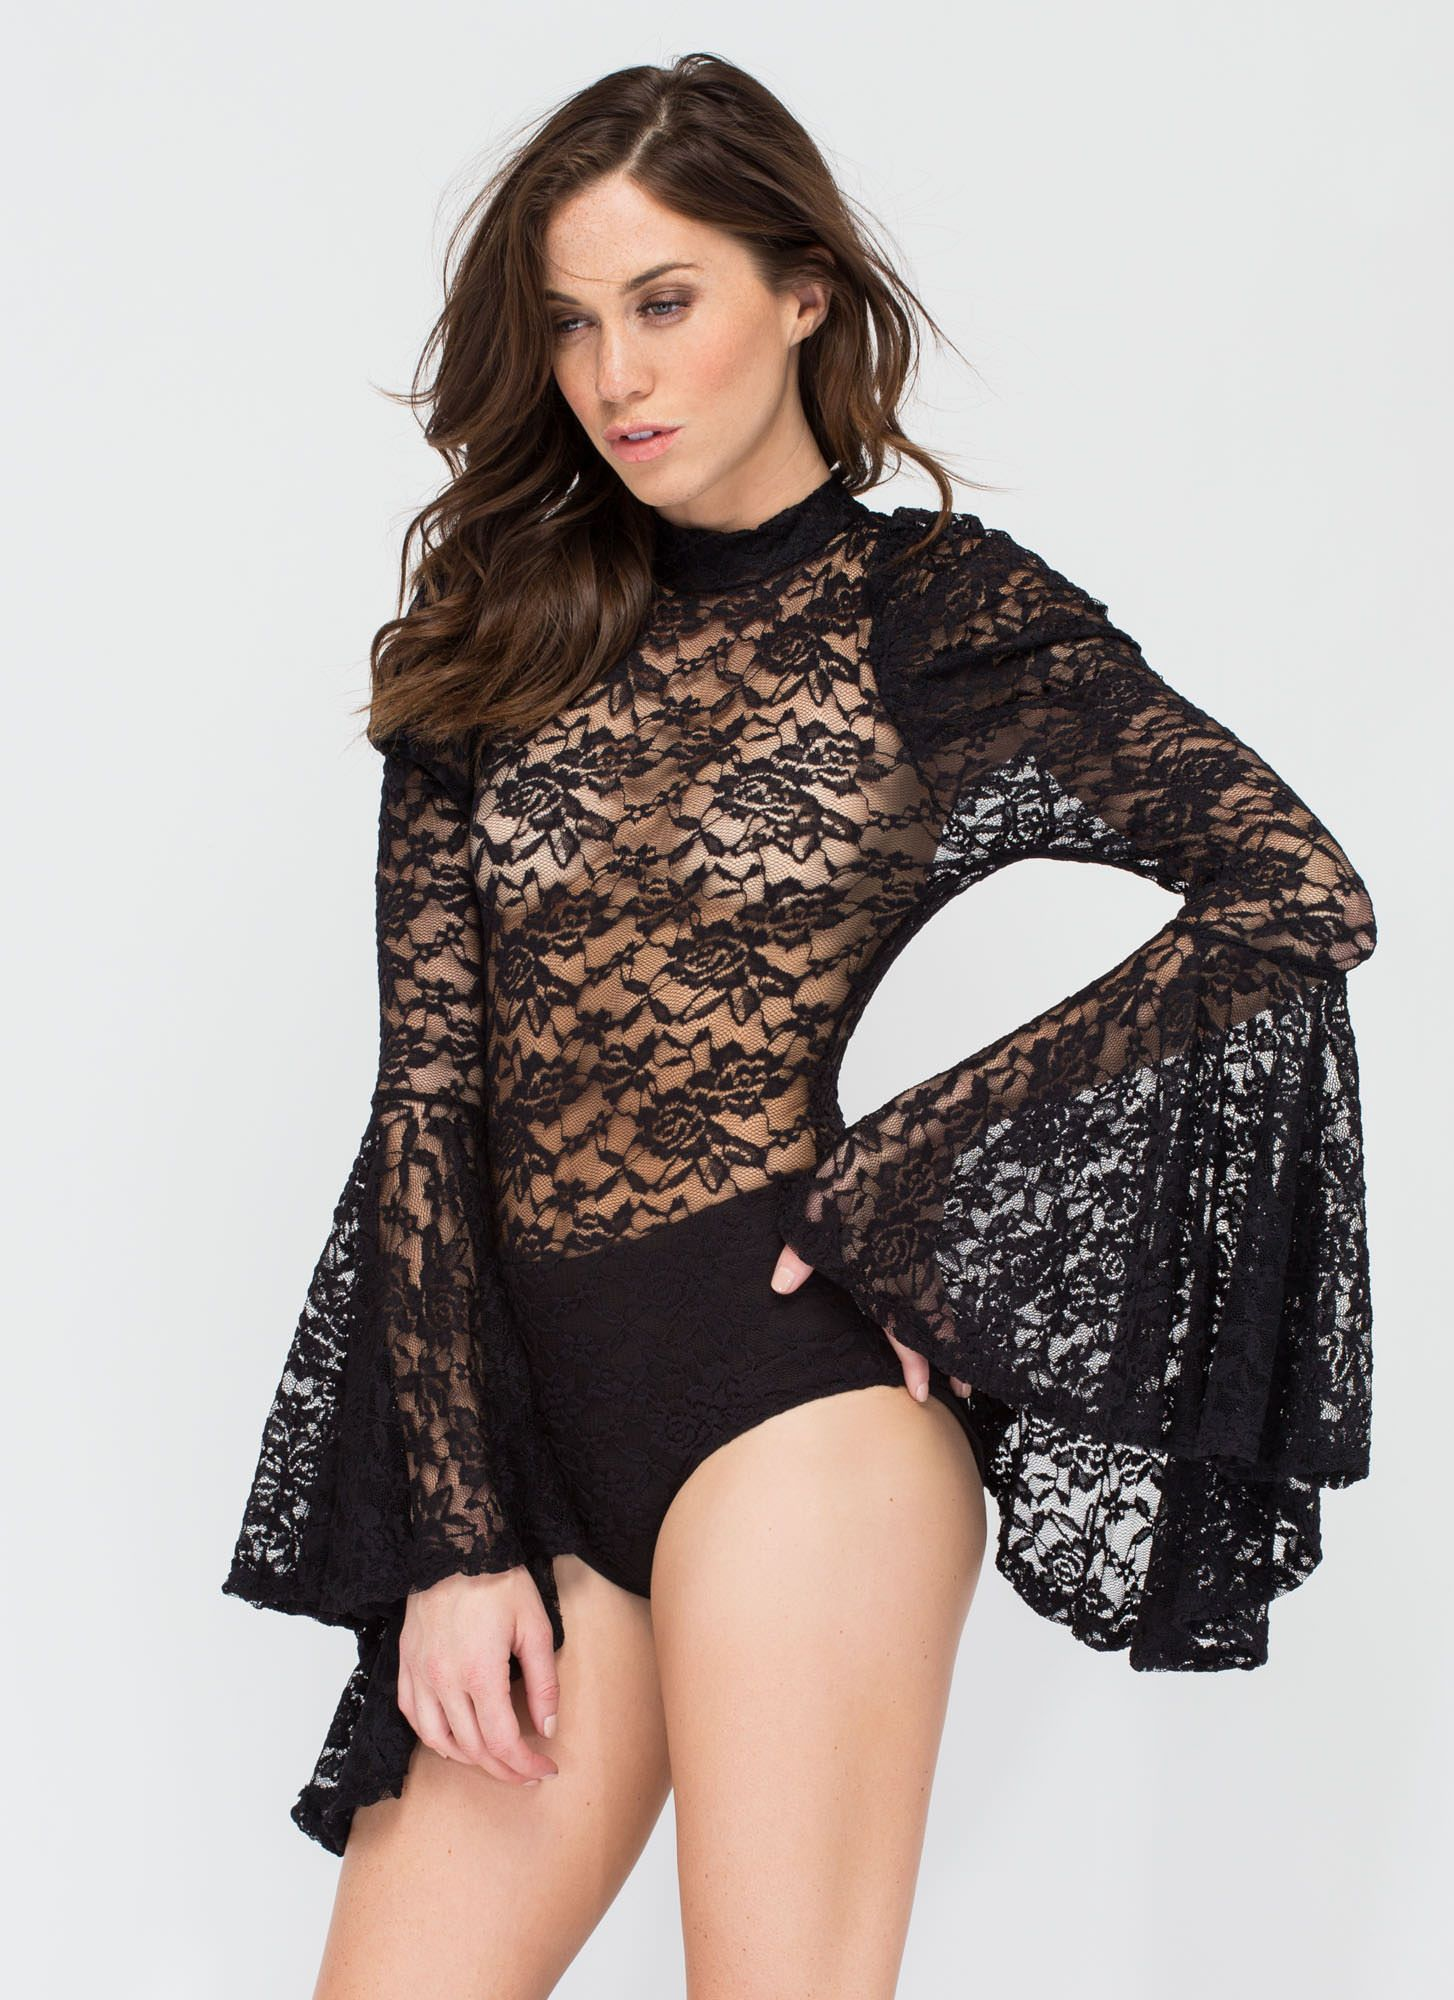 e76c8d4f388 Hippie Goddess Sheer Lace Bodysuit BLACK | aerial costume ideas ...